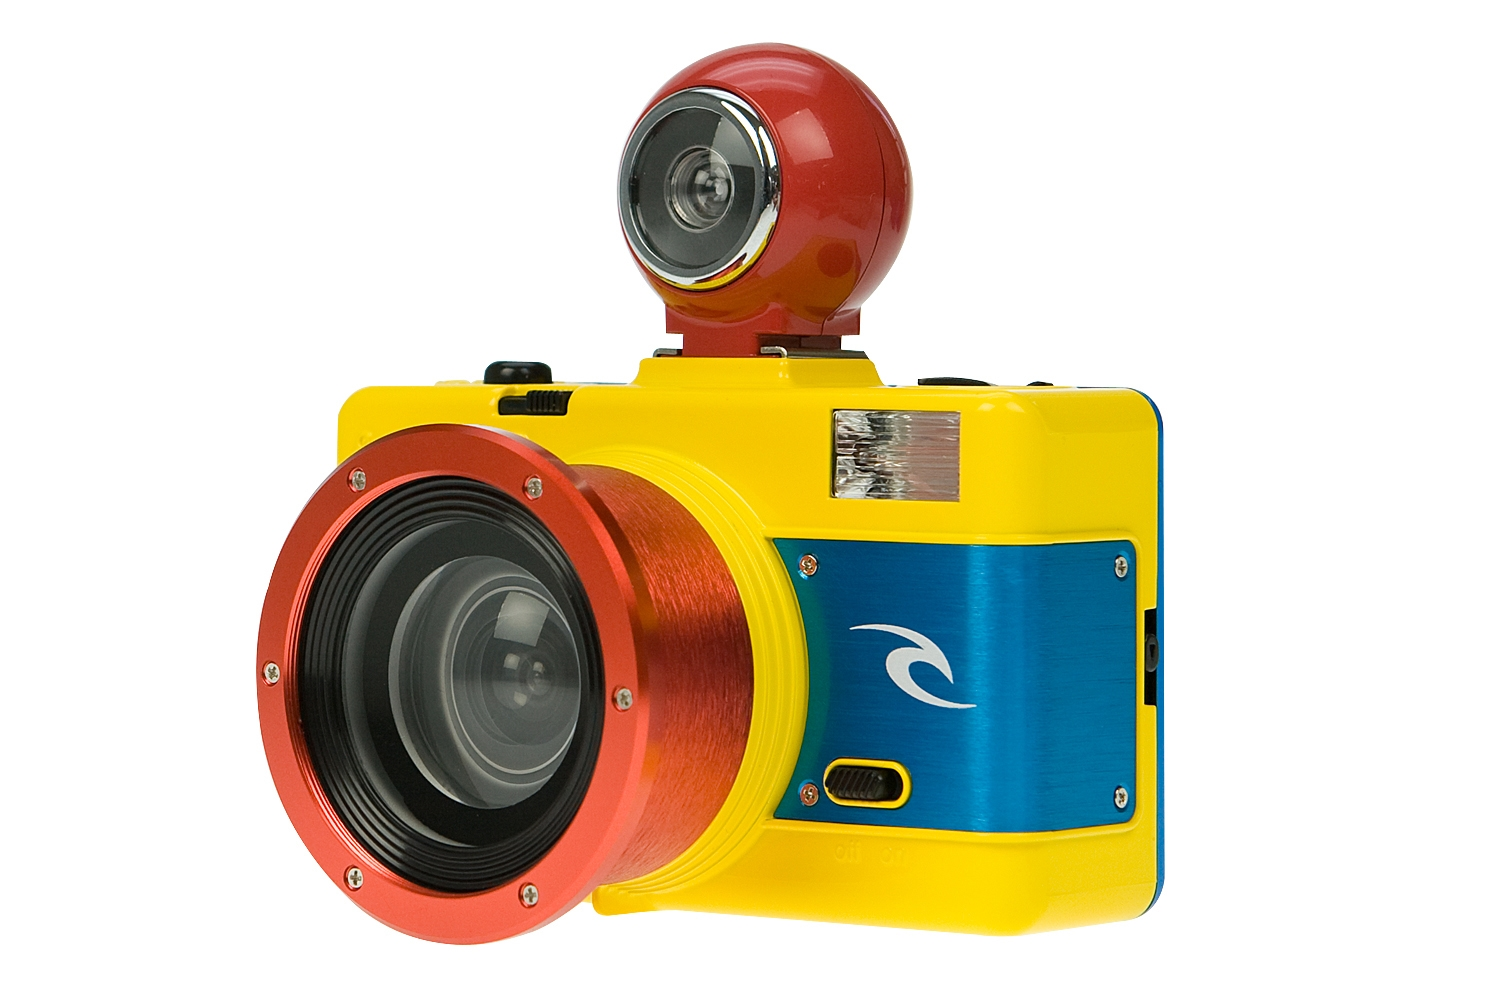 Rip curl x lomography underwater hipstering for Fish eye camera